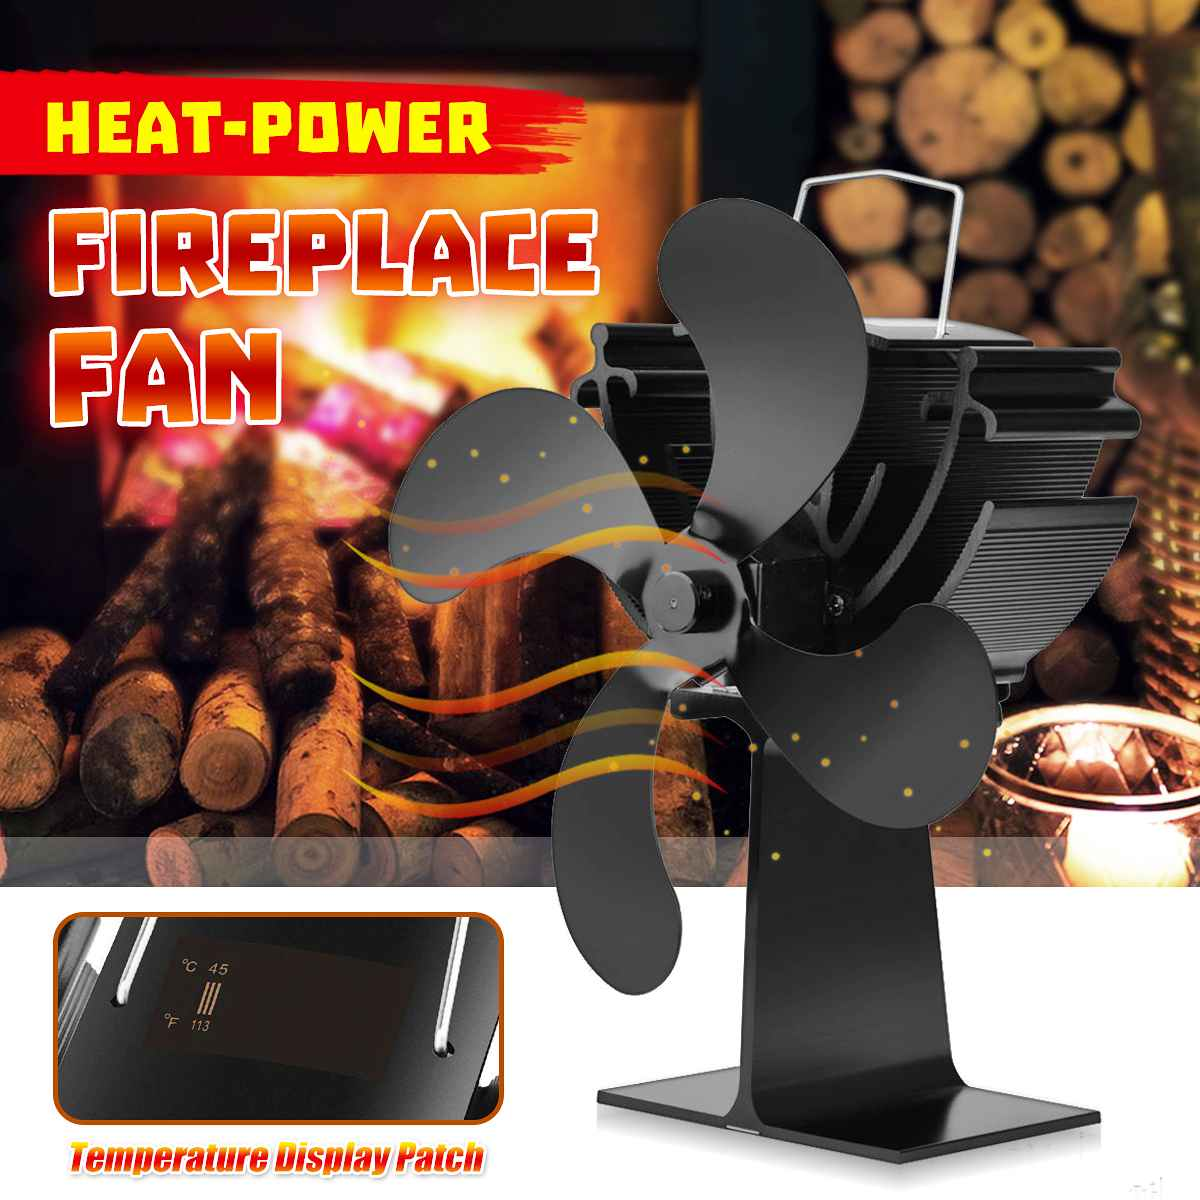 Stove Fan 4 Blade Temperature Display Fireplace Heat Powered Wood Burner Eco Friendly Quiet Fan Home Efficient Heat Distribution